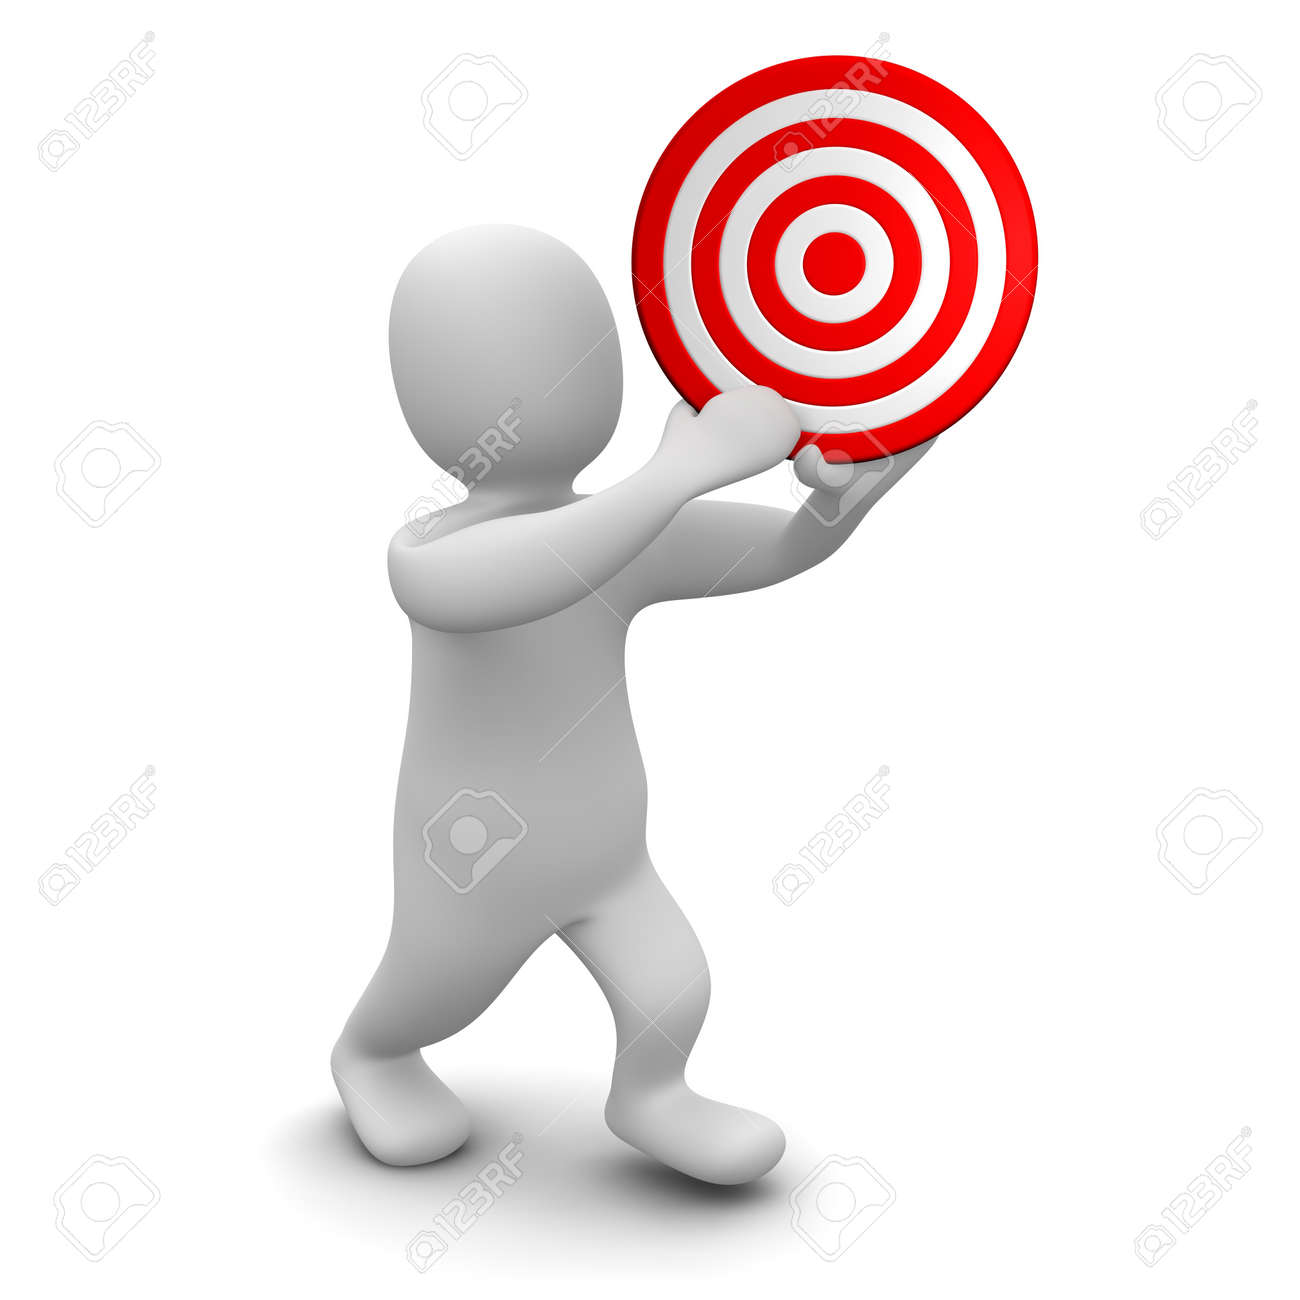 Man holding red target. 3d rendered illustration. Stock Photo - 7473319